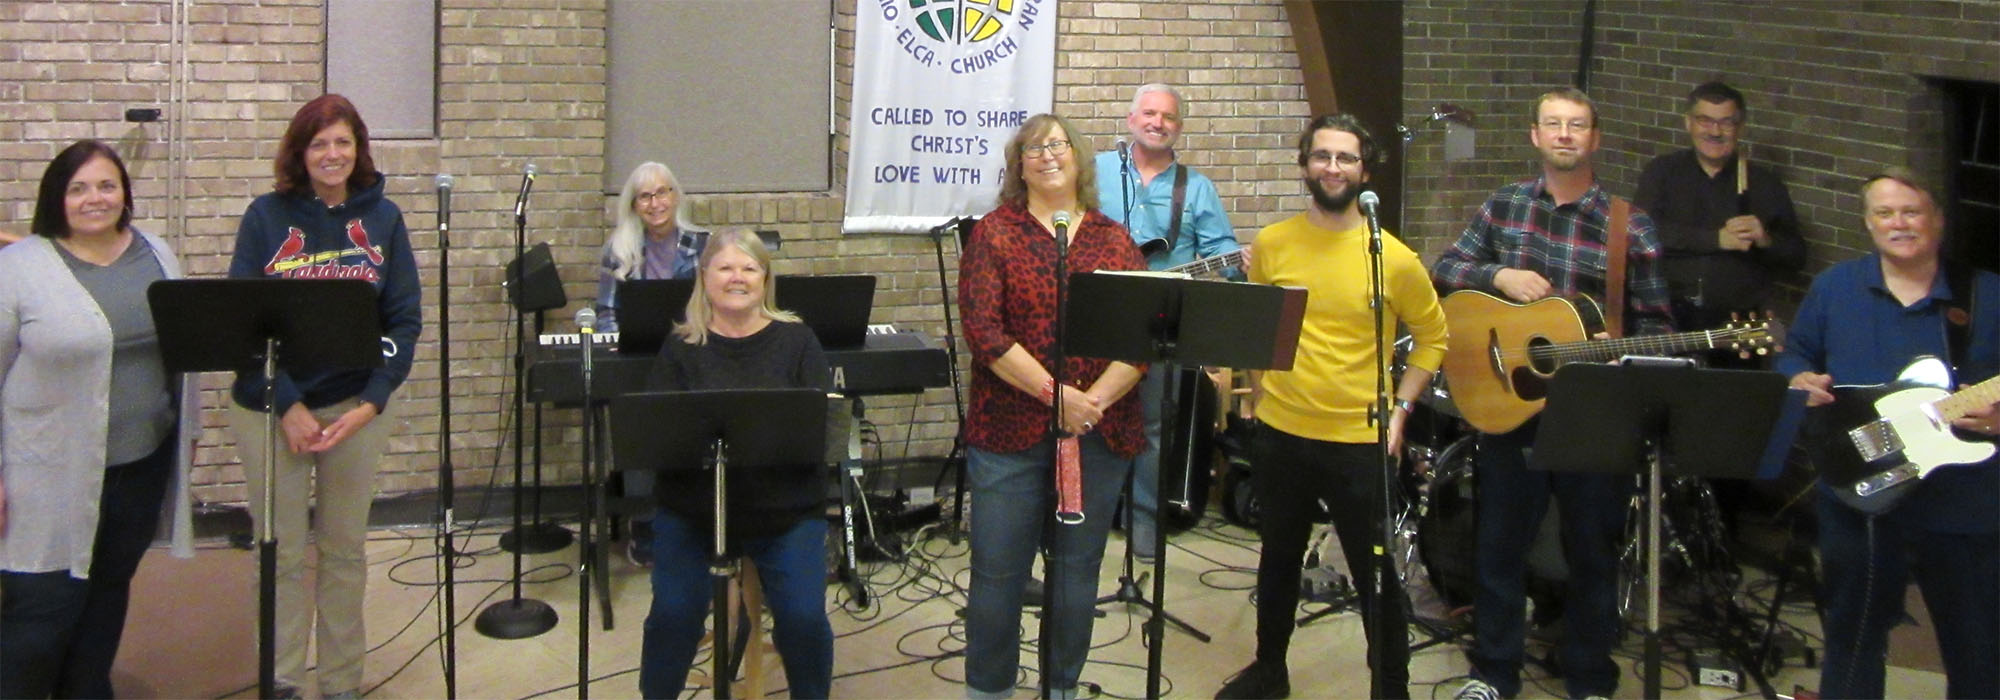 Praise Band at Our Lord's Lutheran Church